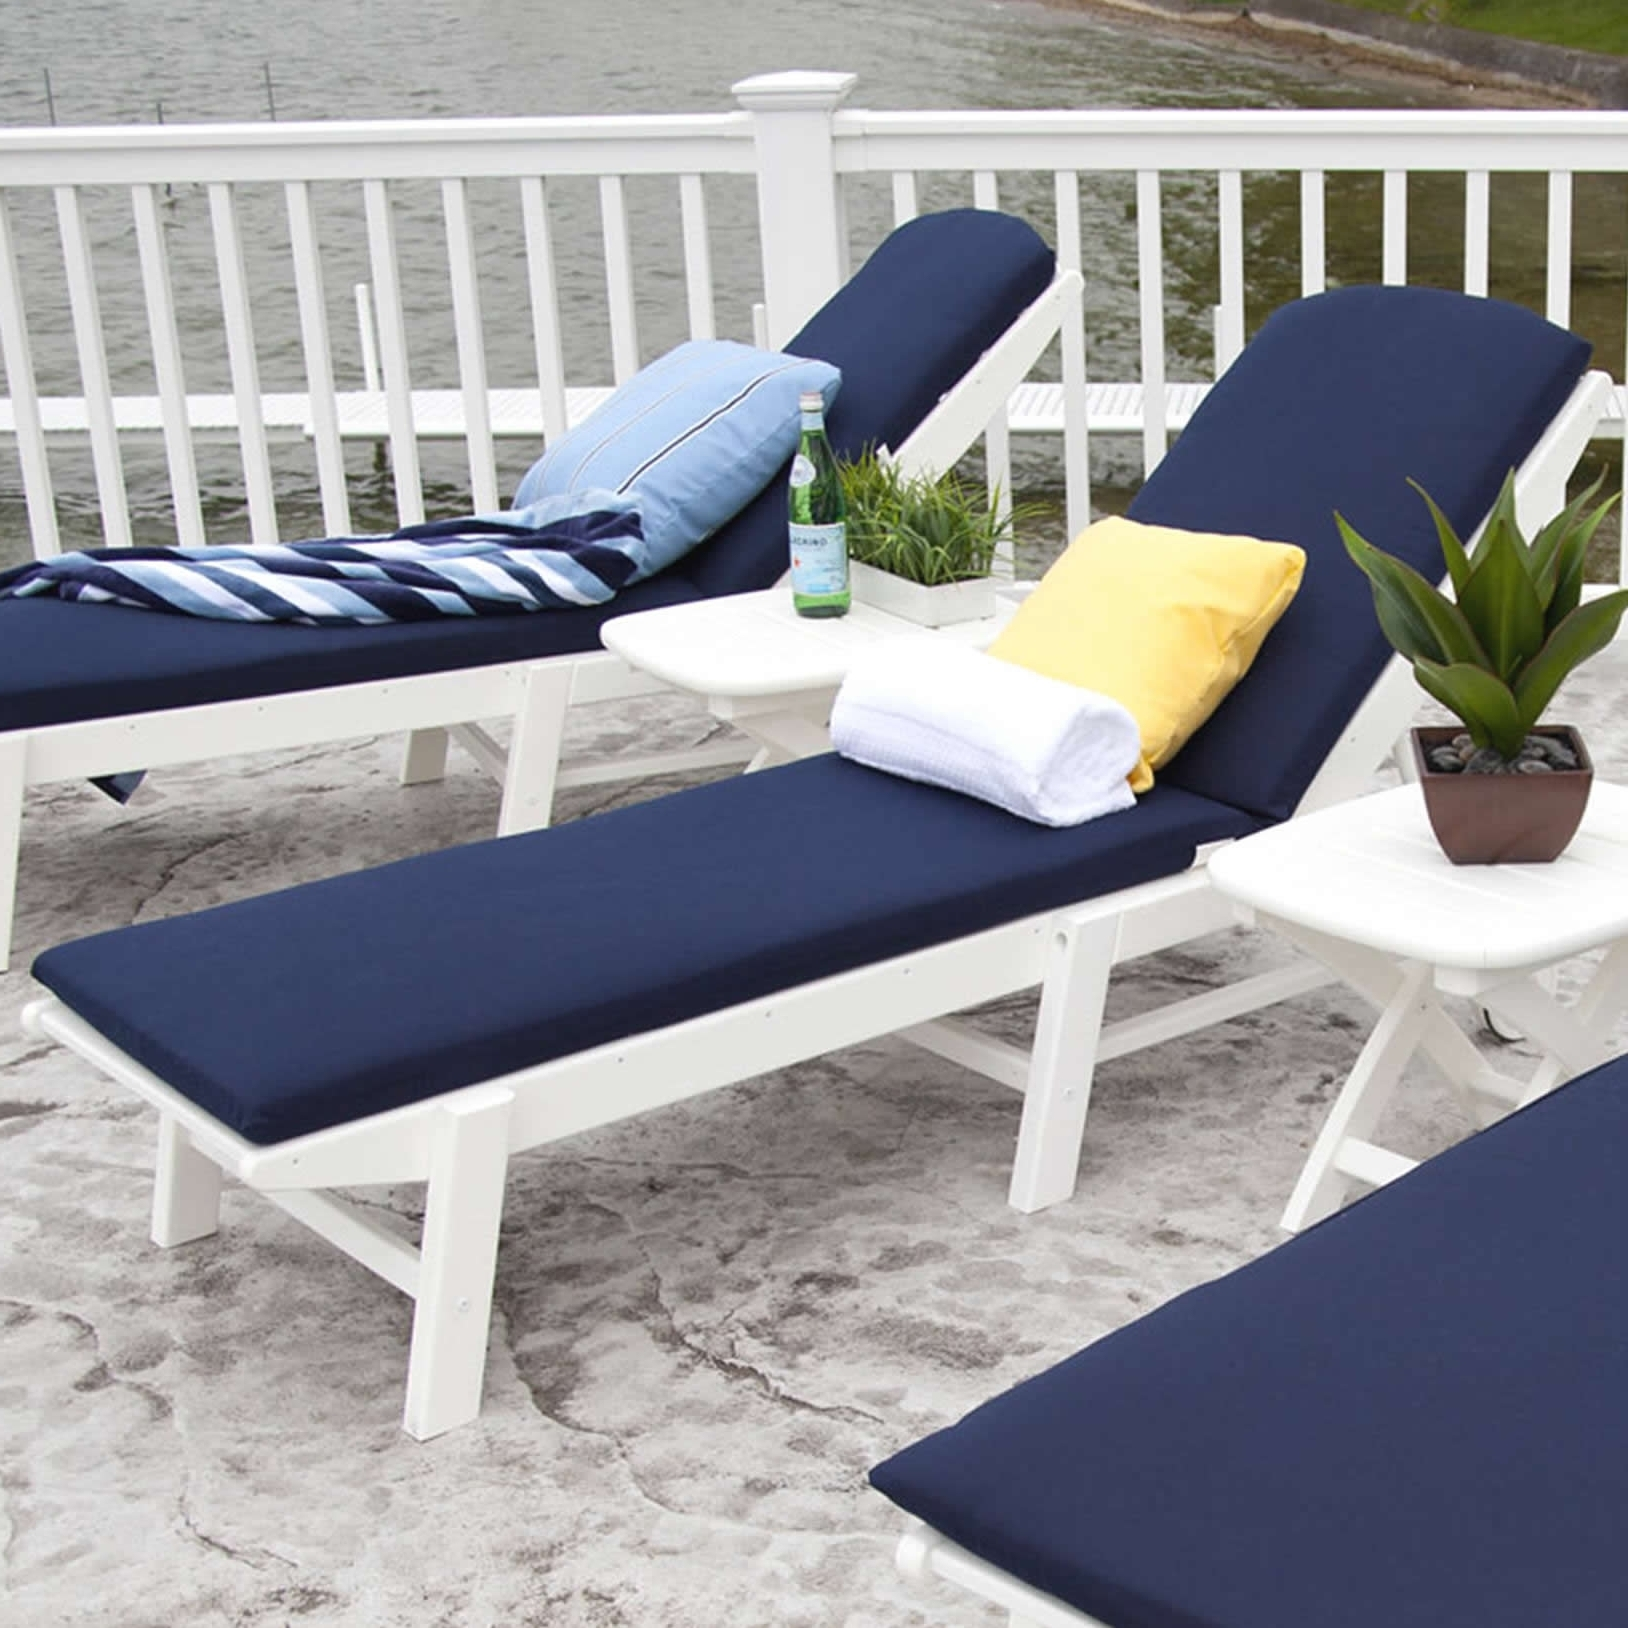 Fashionable Outdoor : Chaise Lounge Cushions Amazon Target Chaise Lounge Lowes Throughout Target Outdoor Chaise Lounges (View 8 of 15)